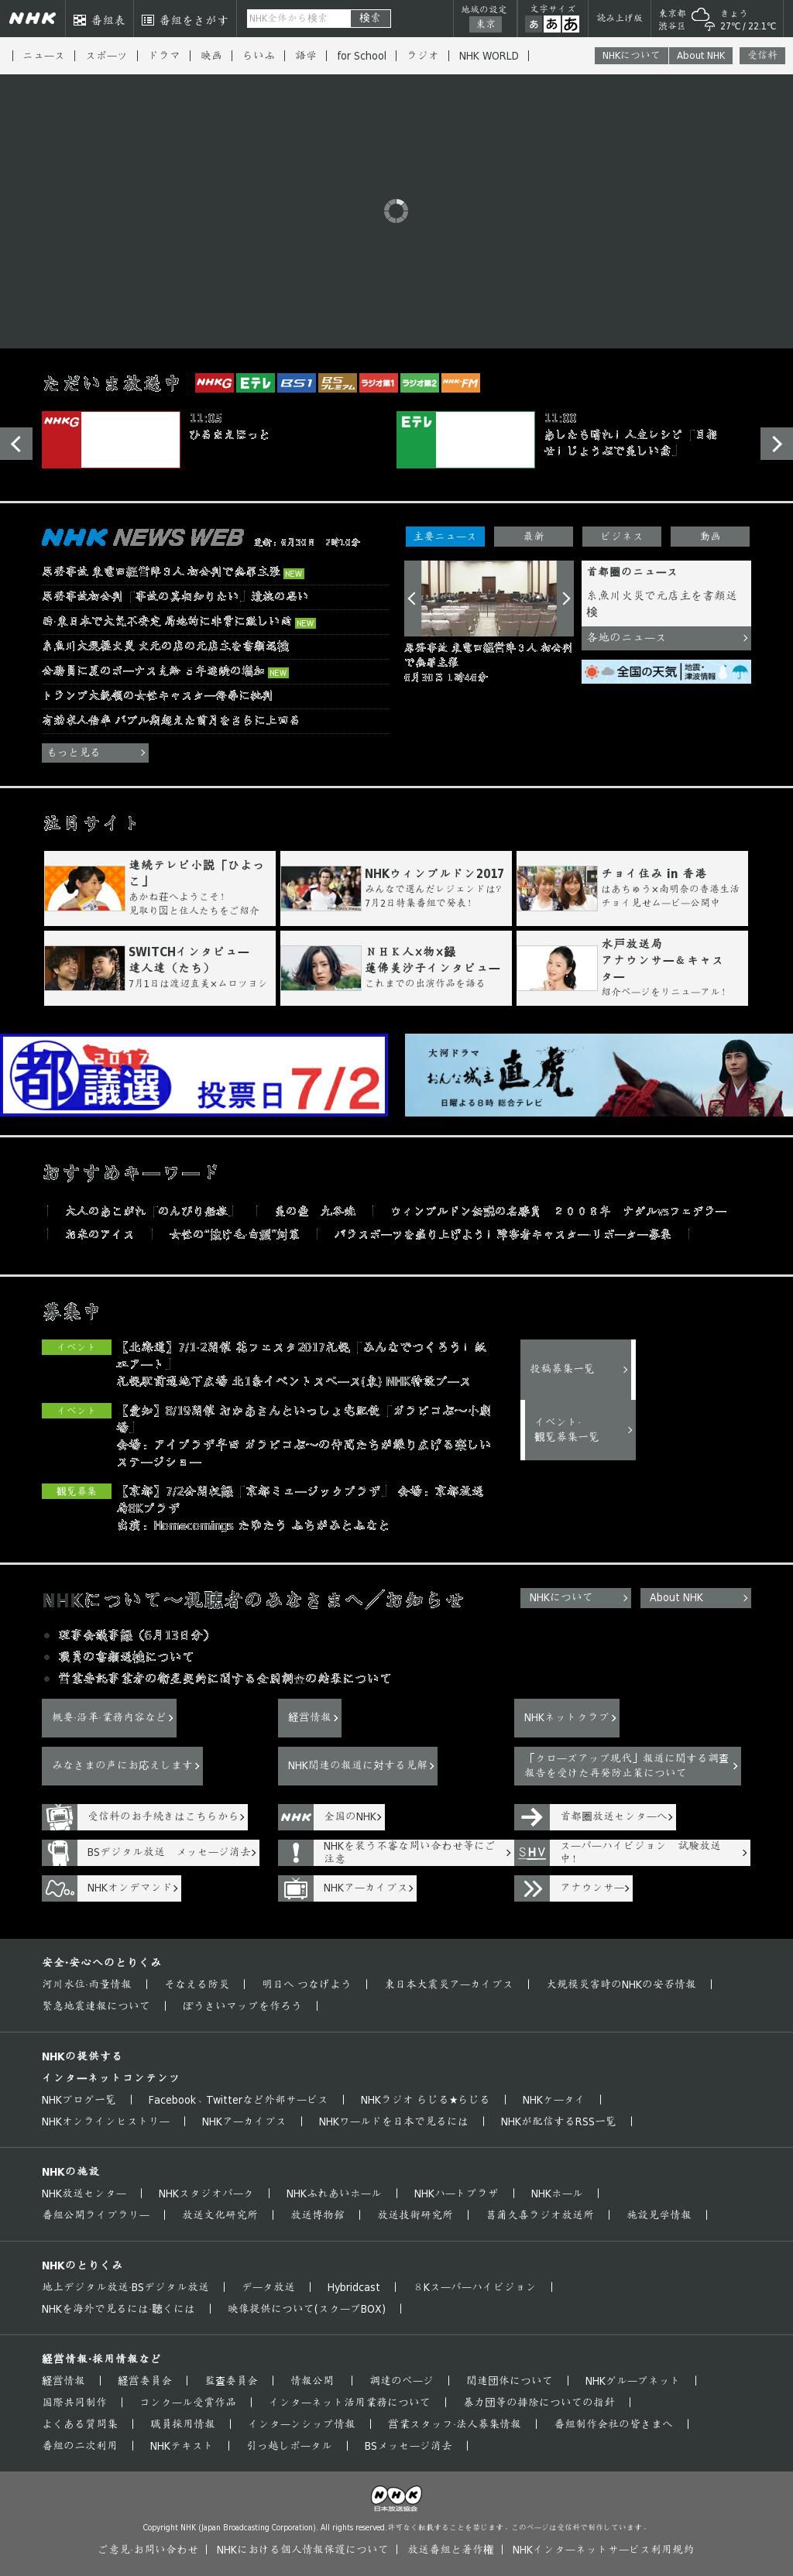 NHK Online at Friday June 30, 2017, 2:13 a.m. UTC